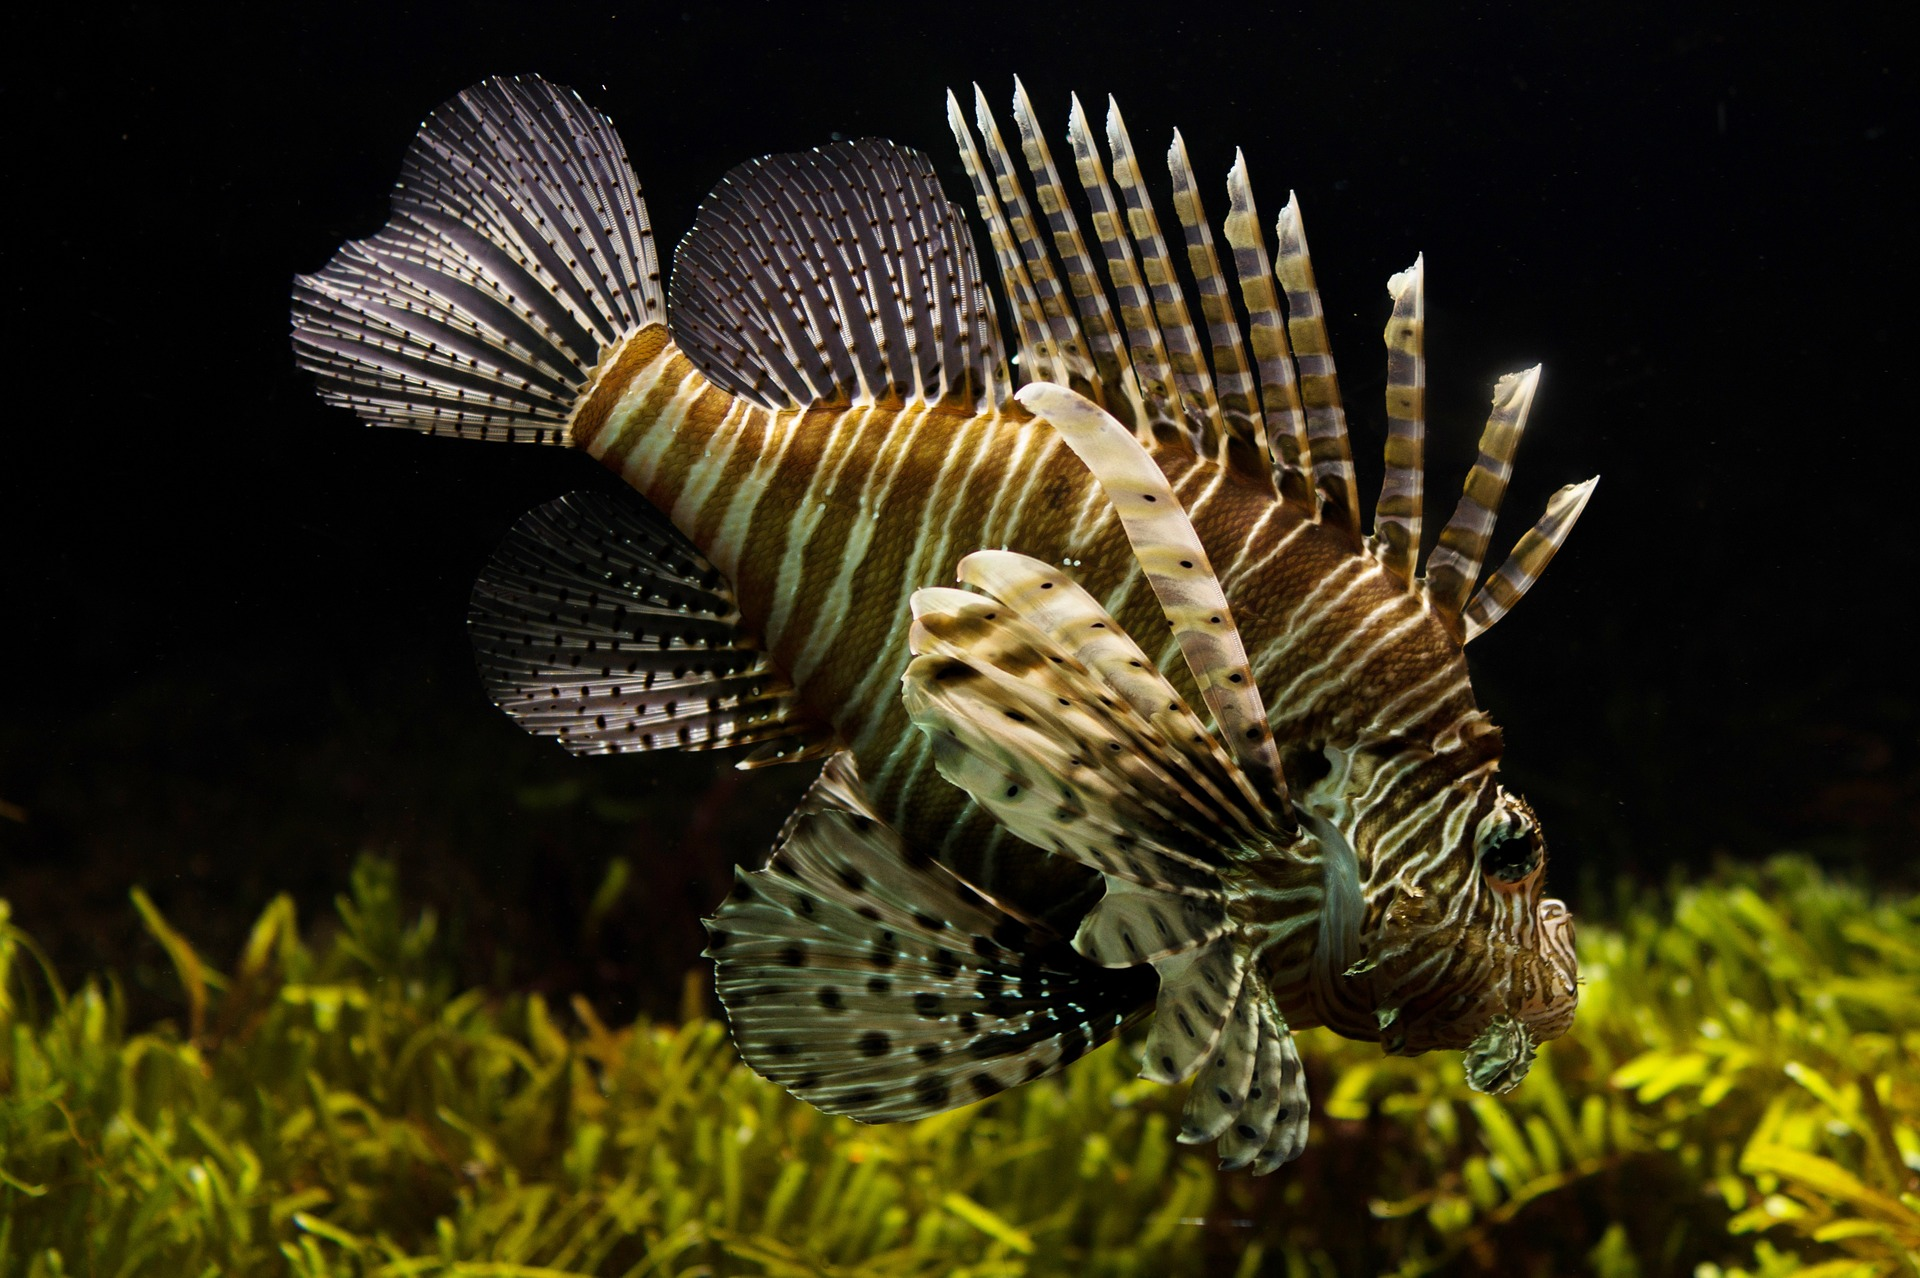 Lionfish in the Ocean, Animal, Fish, Lionfish, Nature, HQ Photo